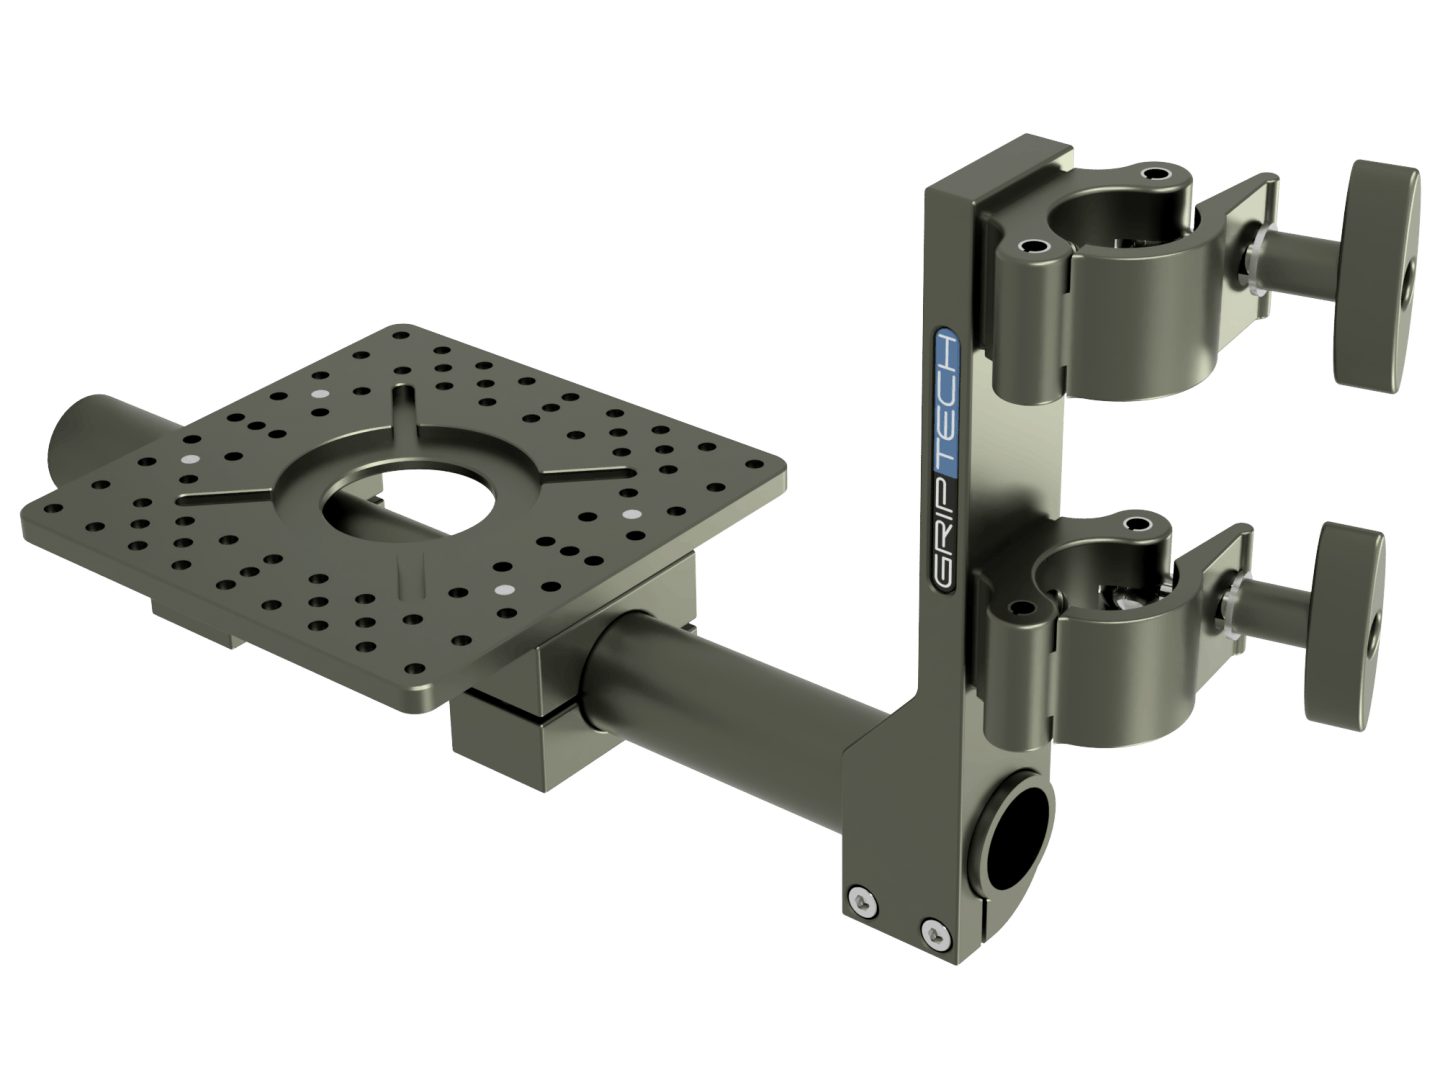 """T Bar Bracket<span style=""""font-size:12px""""><br>+ 2 Scaff Split Clamps <br> + 1 Small Mounting Plate</span>"""